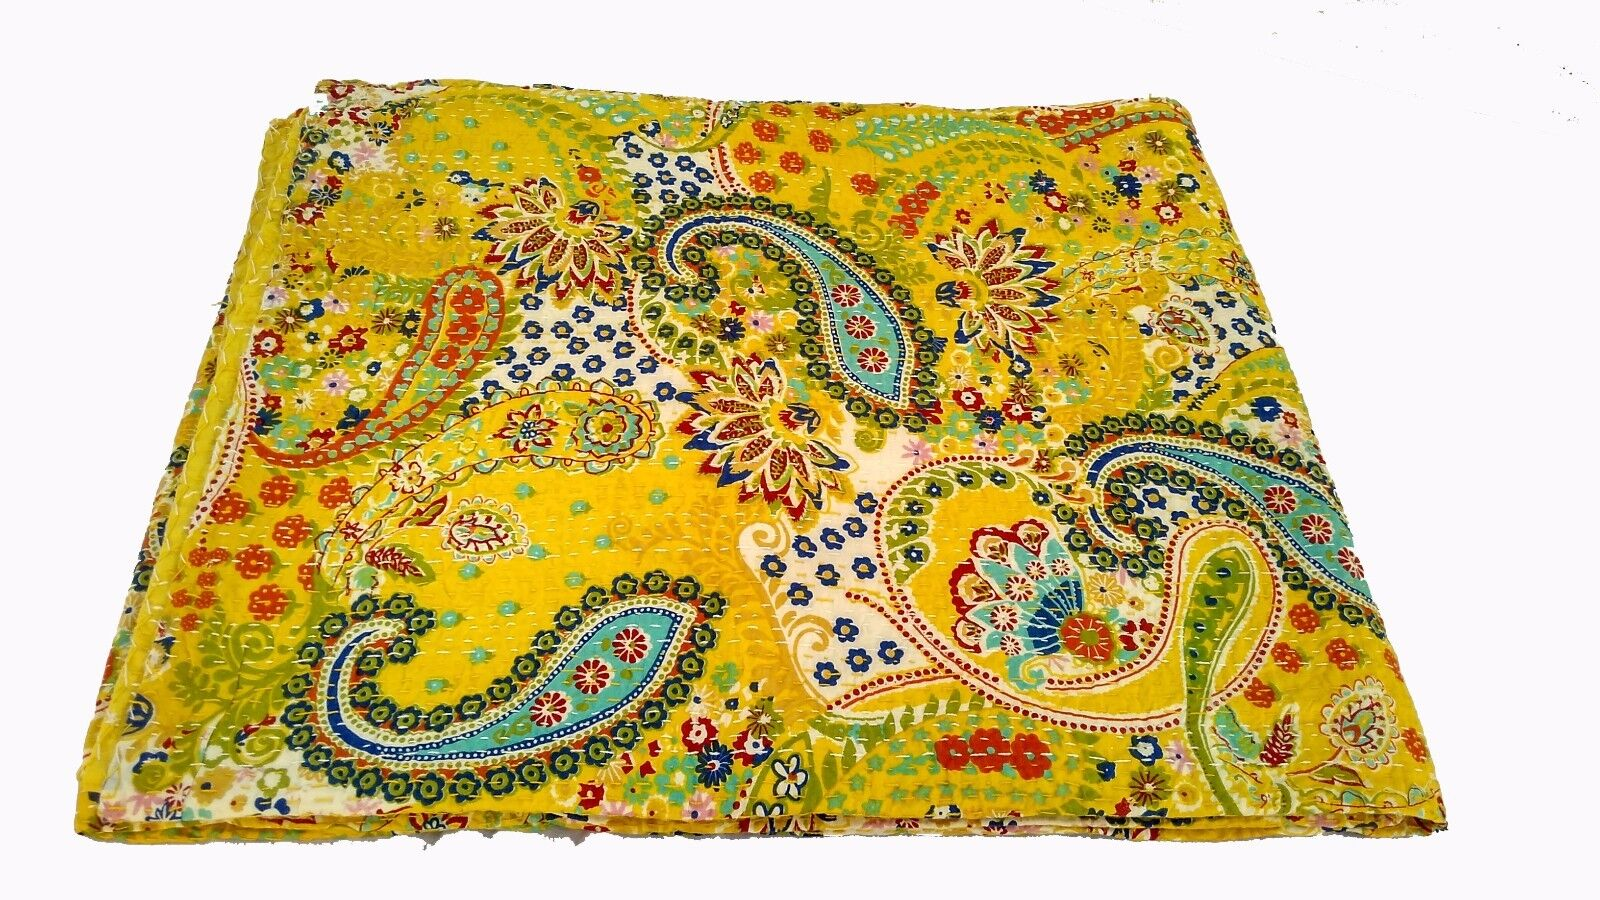 YELLOW KANTHA QUILT BEDSPREAD COTTON HANDMADE PATCHWORK INDIAN BLANKET  CRAZY